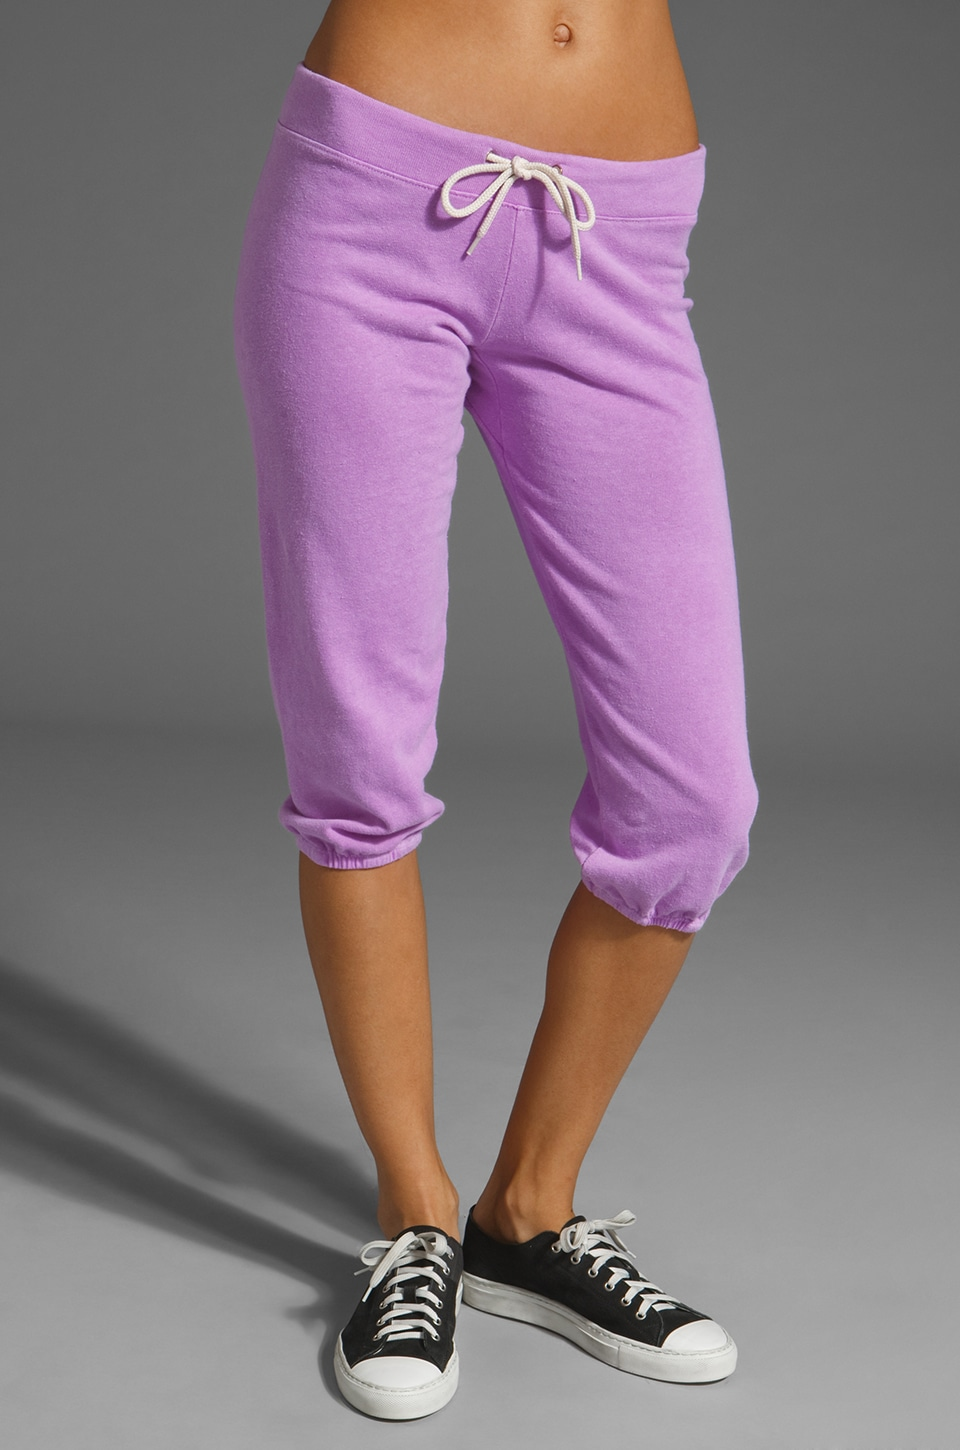 MONROW 3/4 Vintage Sweats in Neon Violet